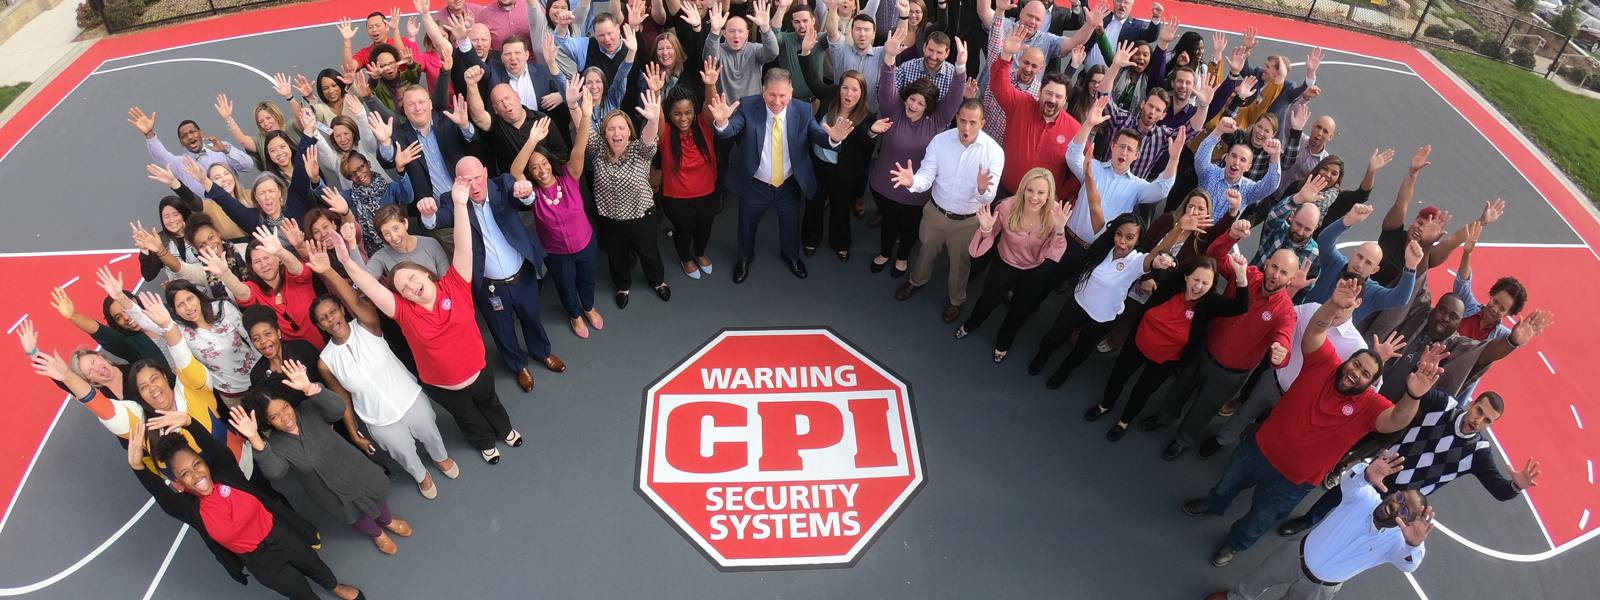 Full staff of CPI Security cheering